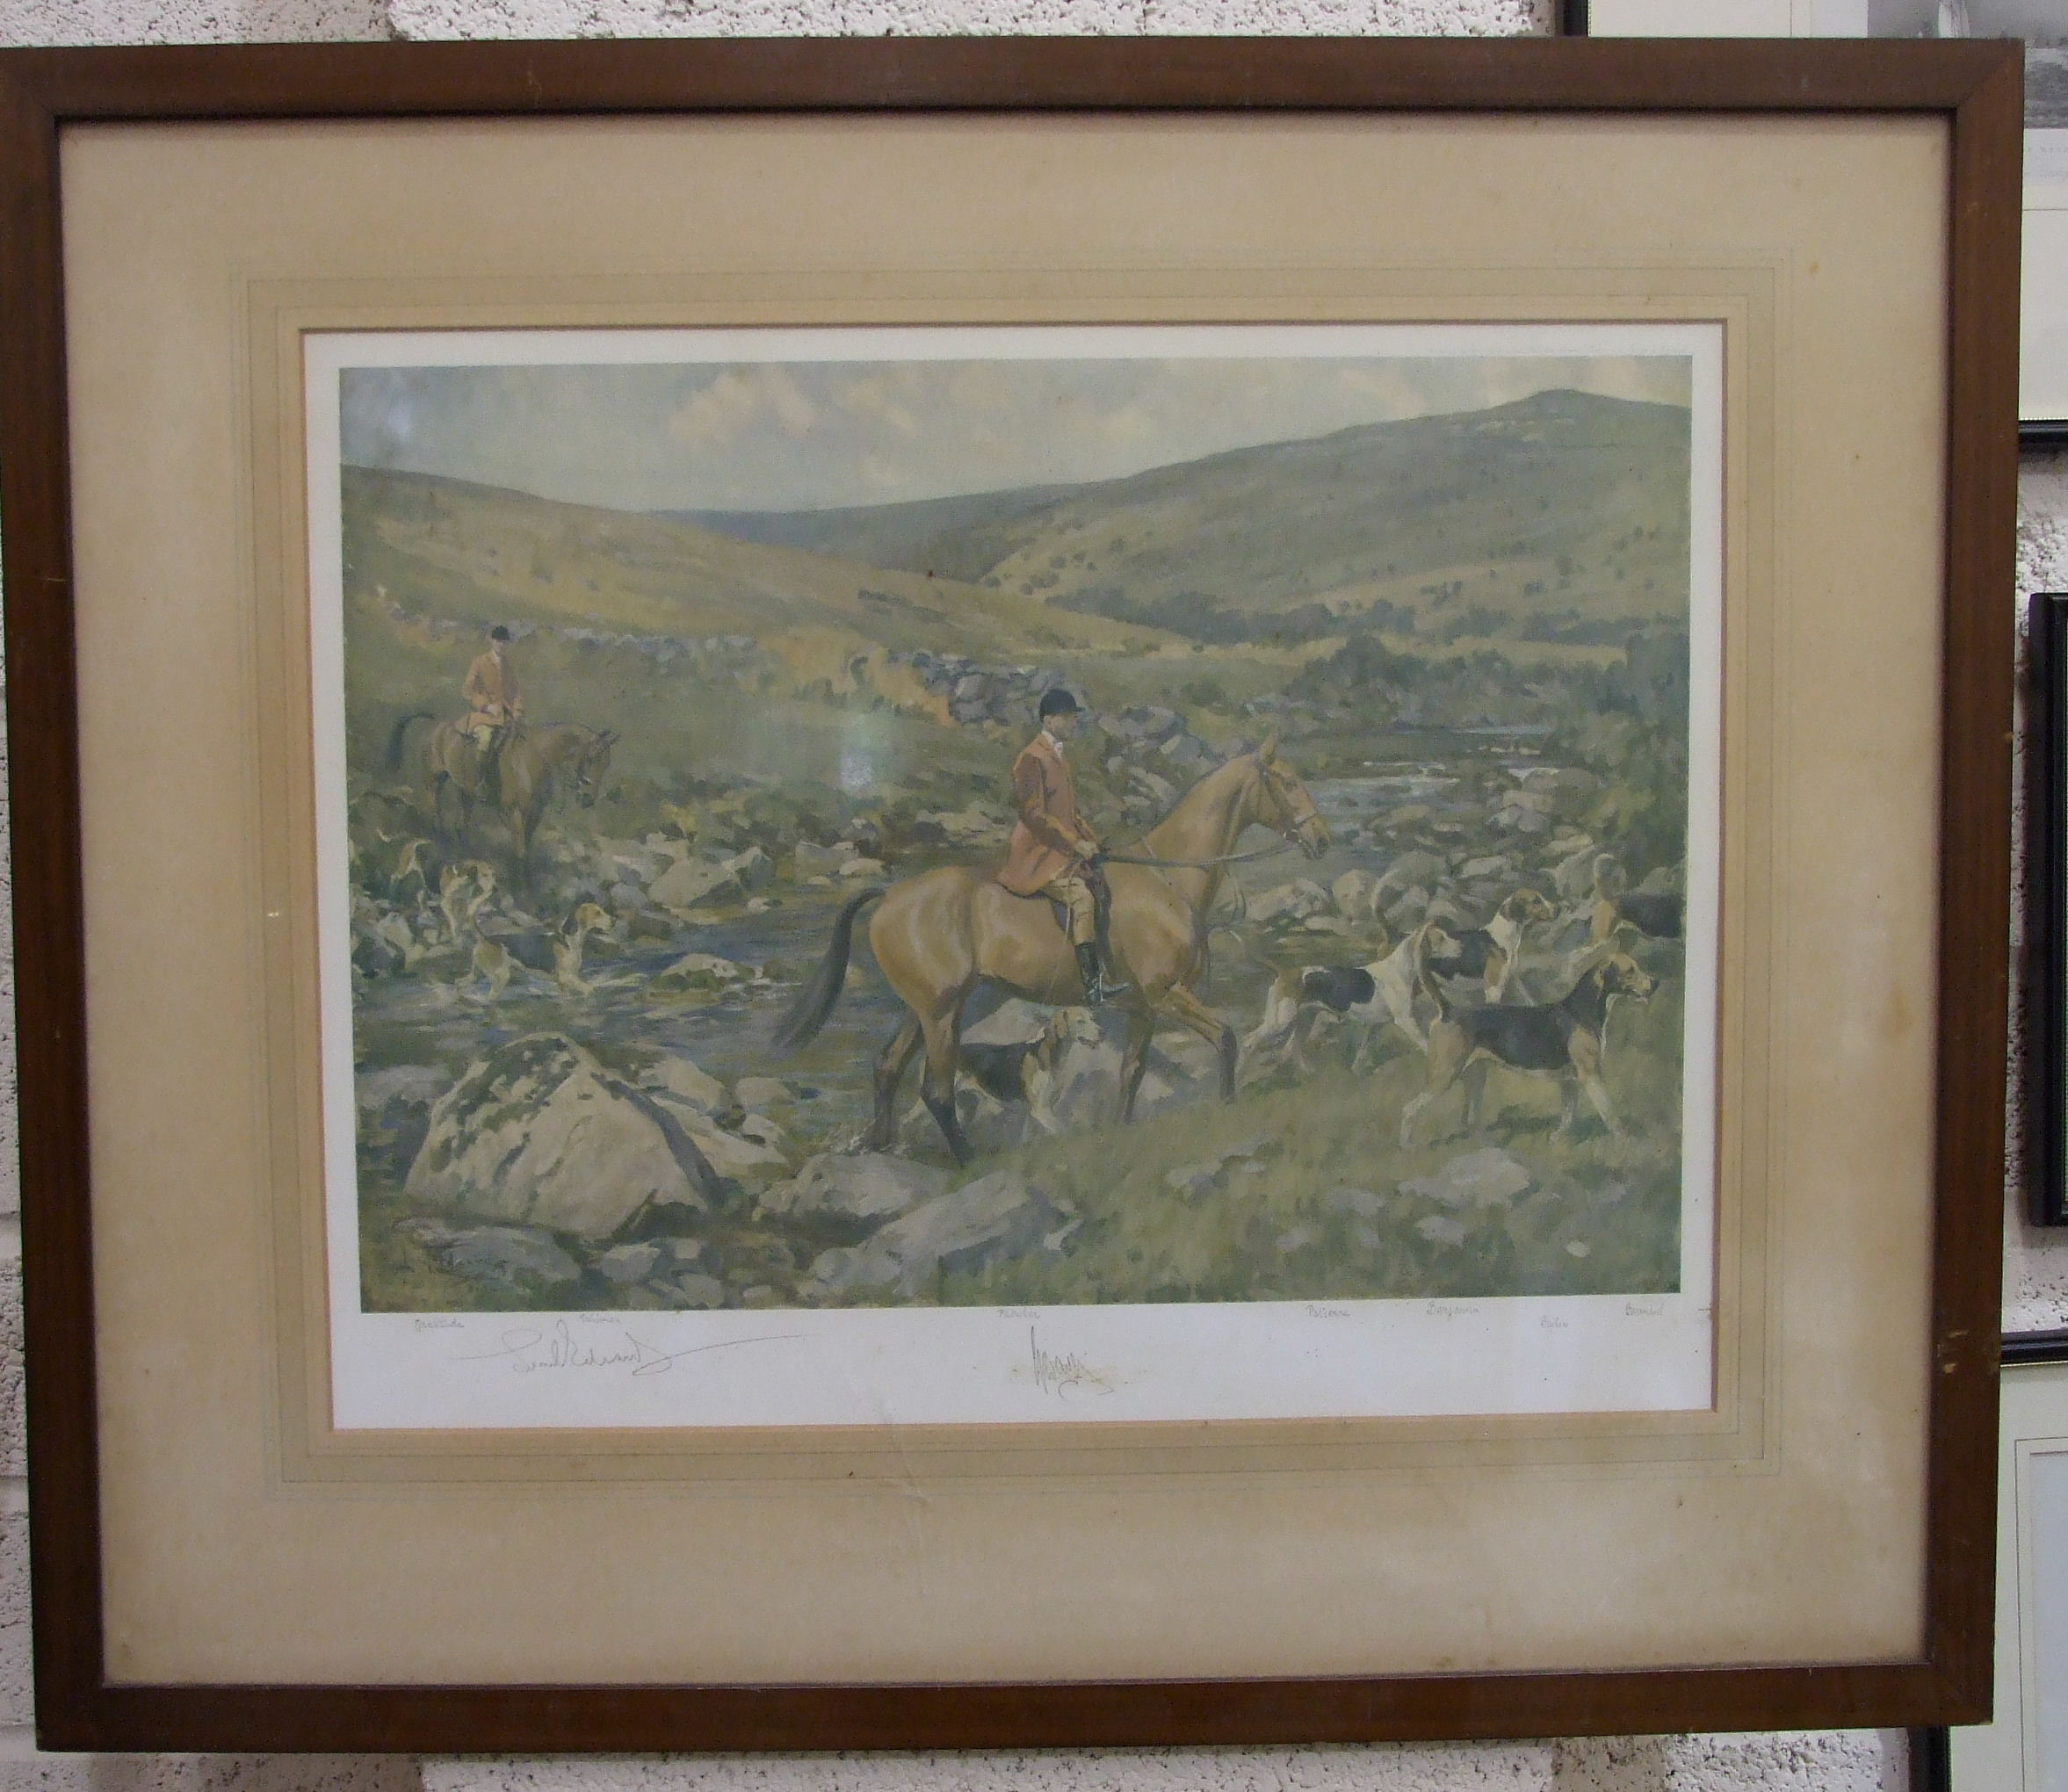 After Lionel Edwards, coloured lithographic print 'Dartmoor Hunt', signed in pencil, huntsman and - Image 2 of 5